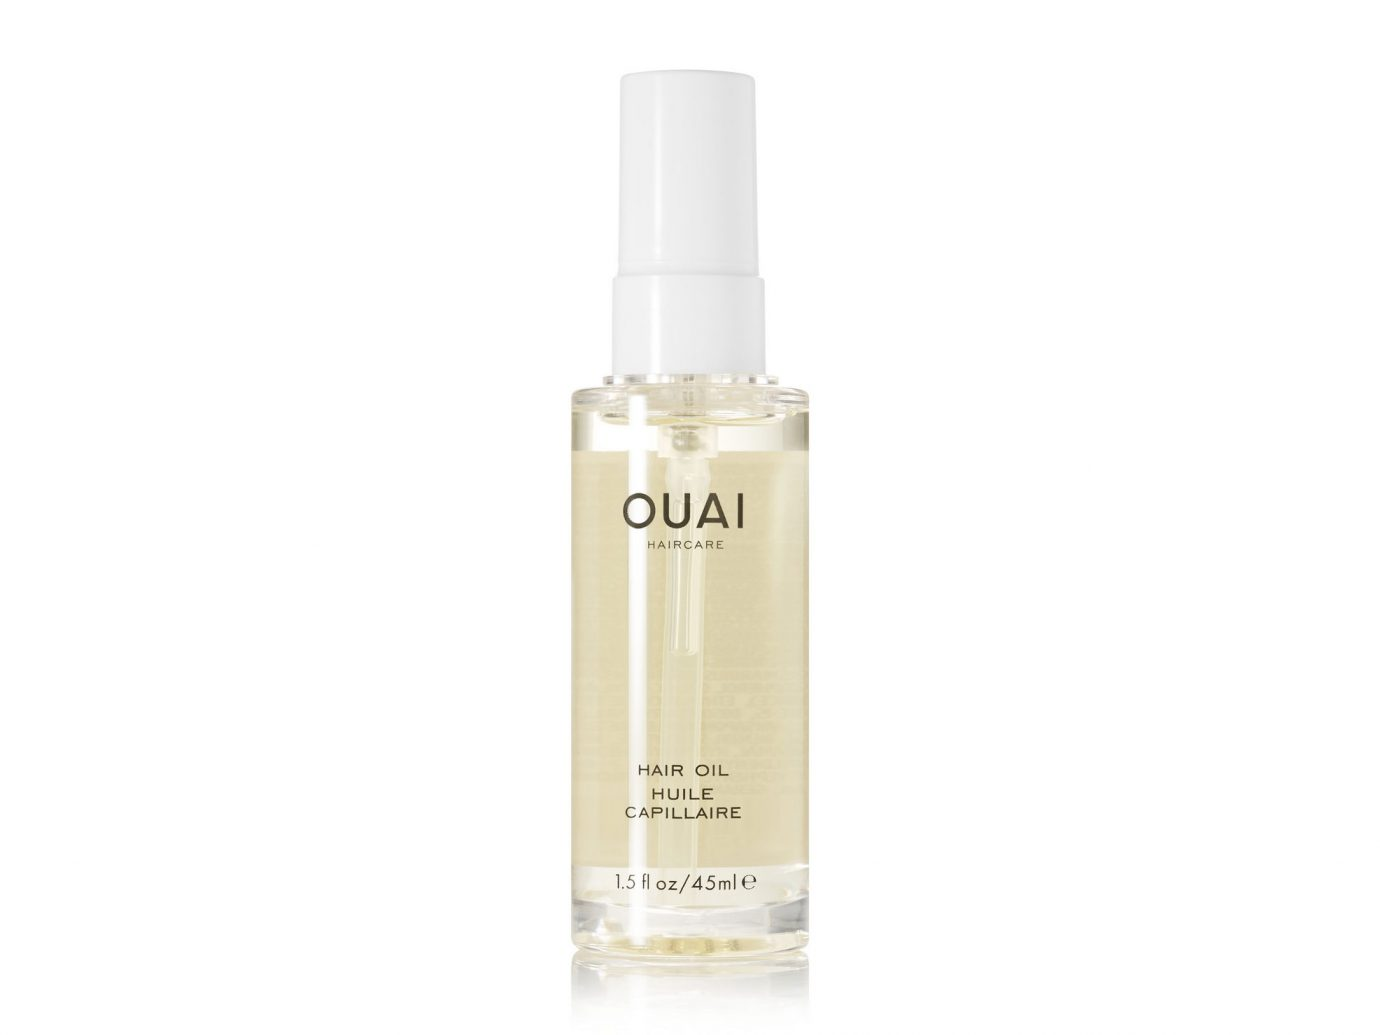 OUAI HAIRCARE Hair Oil, 45ml